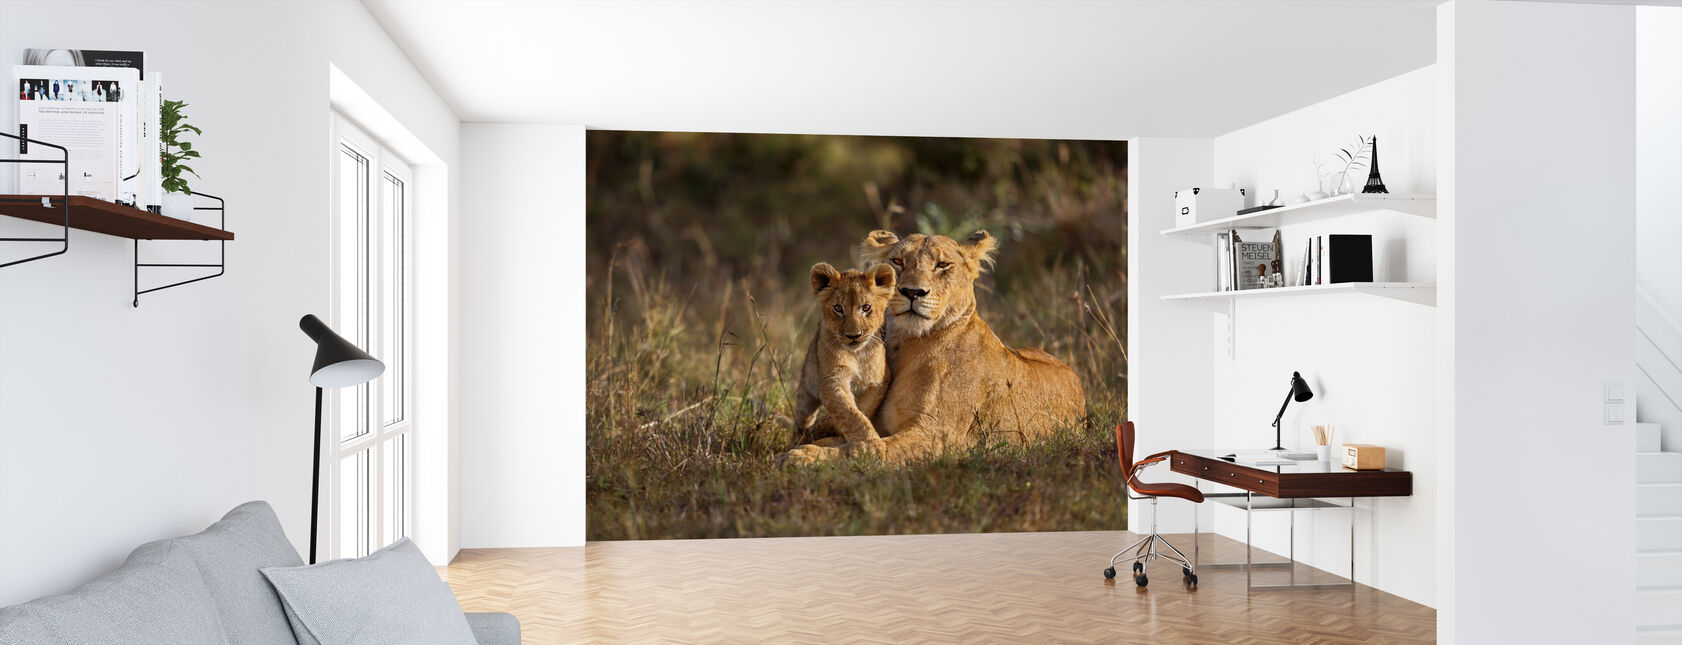 Lion Mother and Cub - Wallpaper - Office